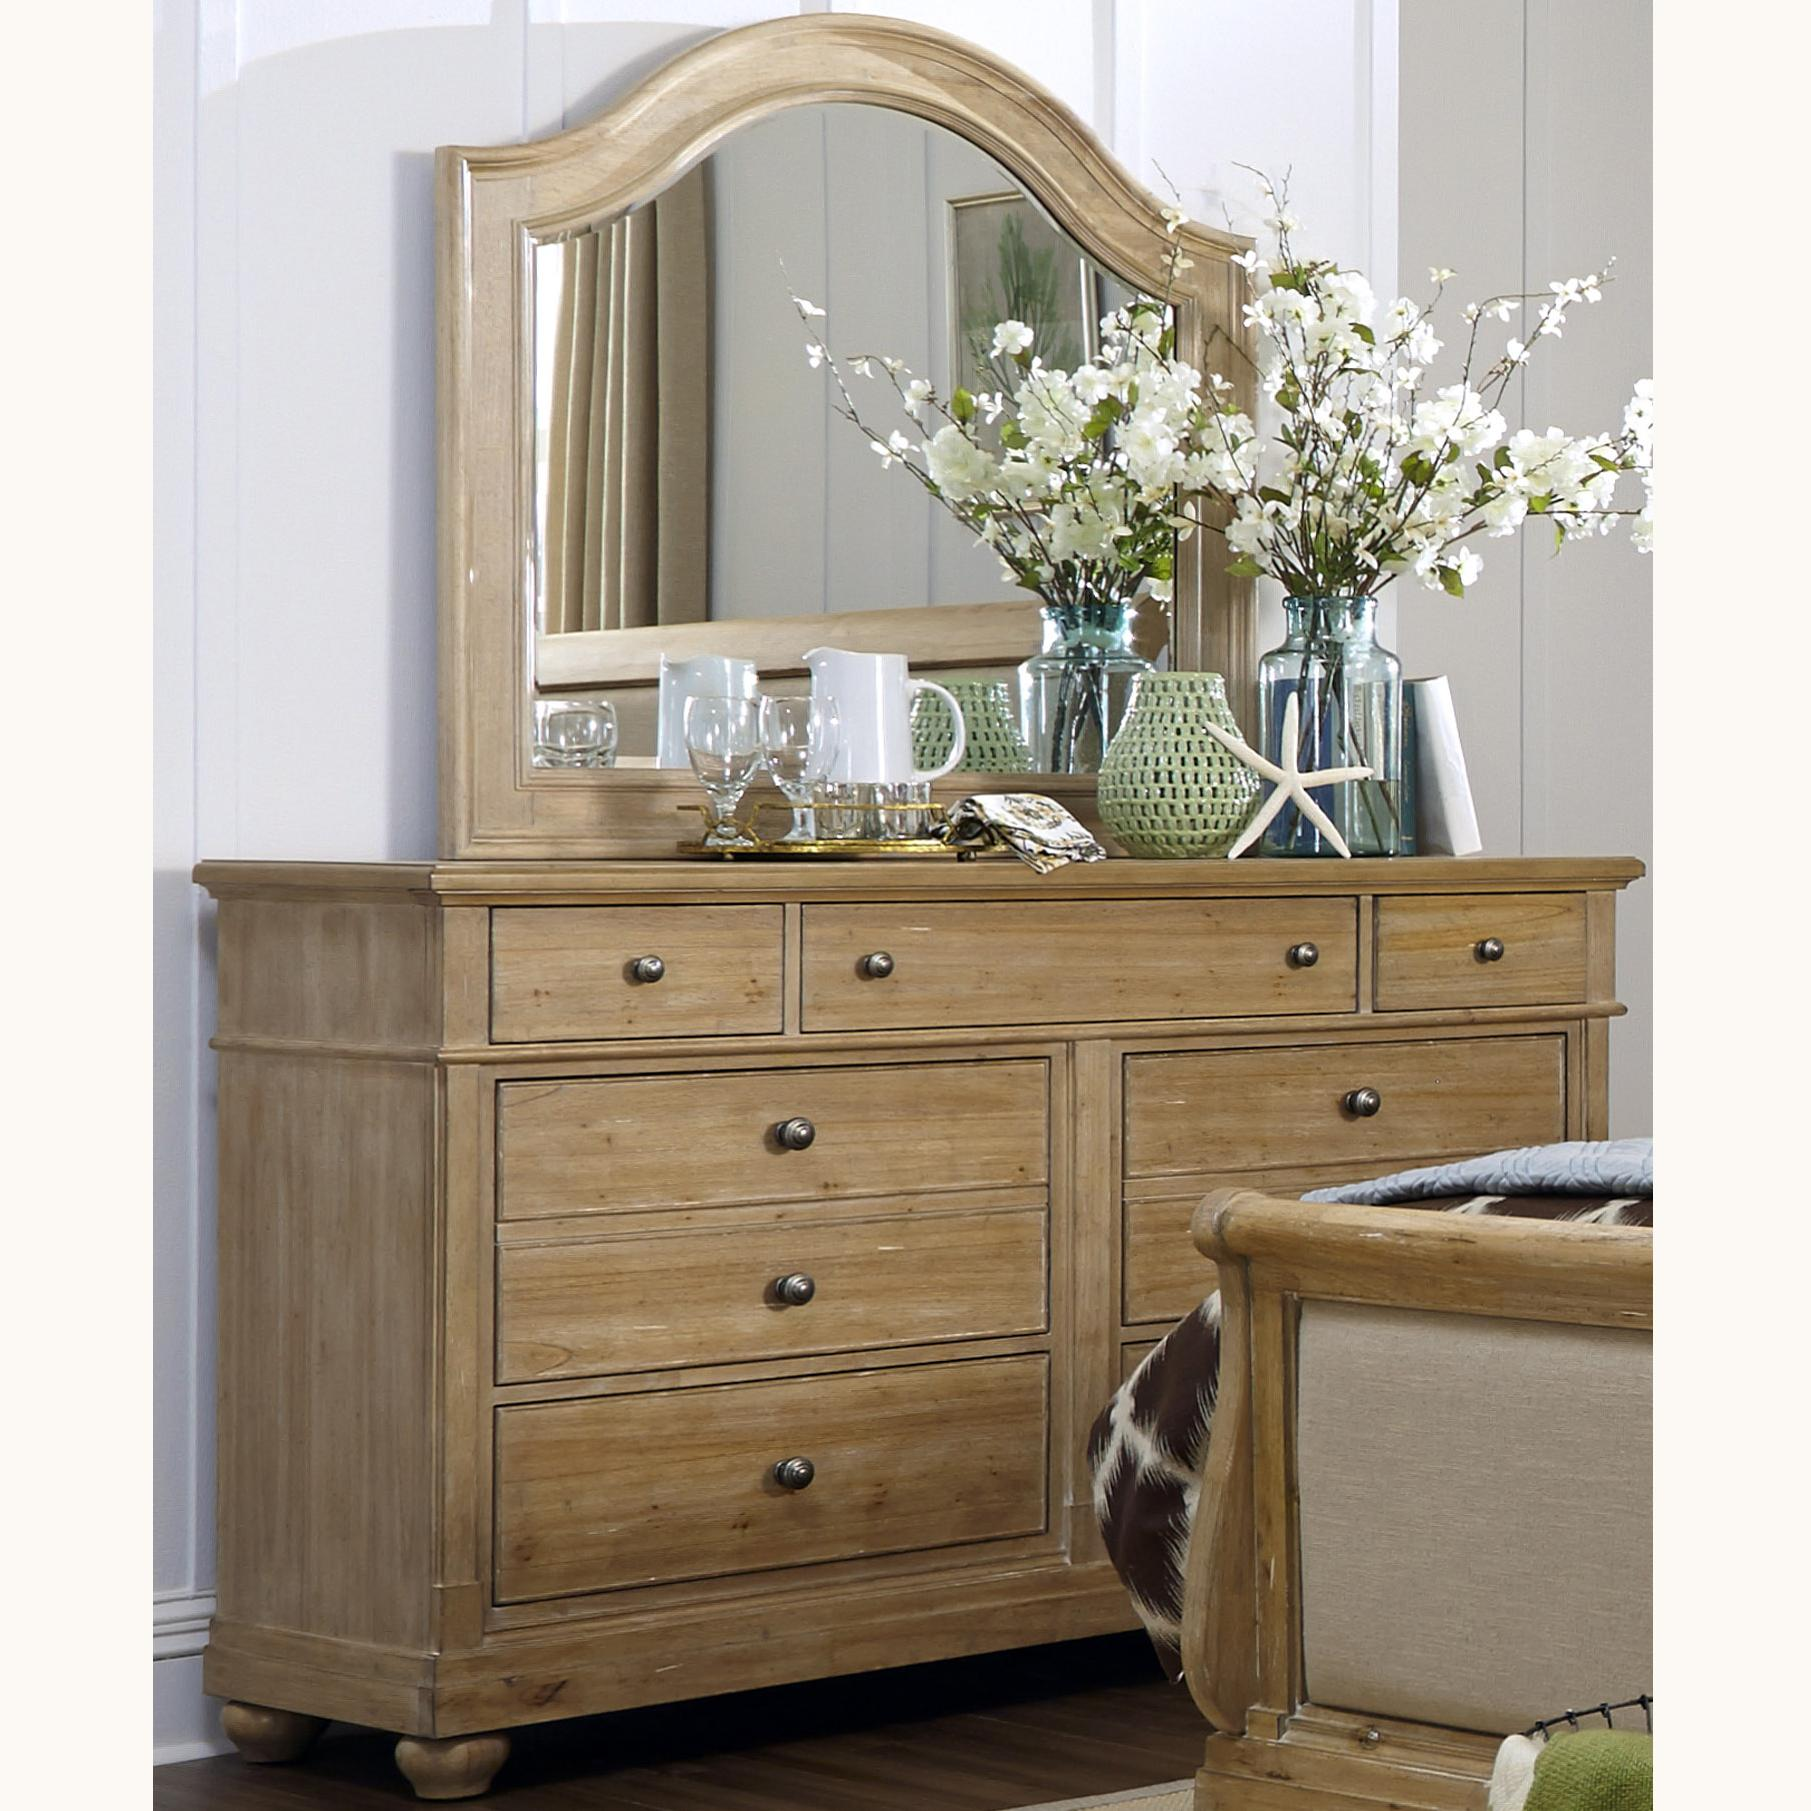 Liberty Furniture Harbor View Dresser with Mirror - Item Number: 531-BR-DM